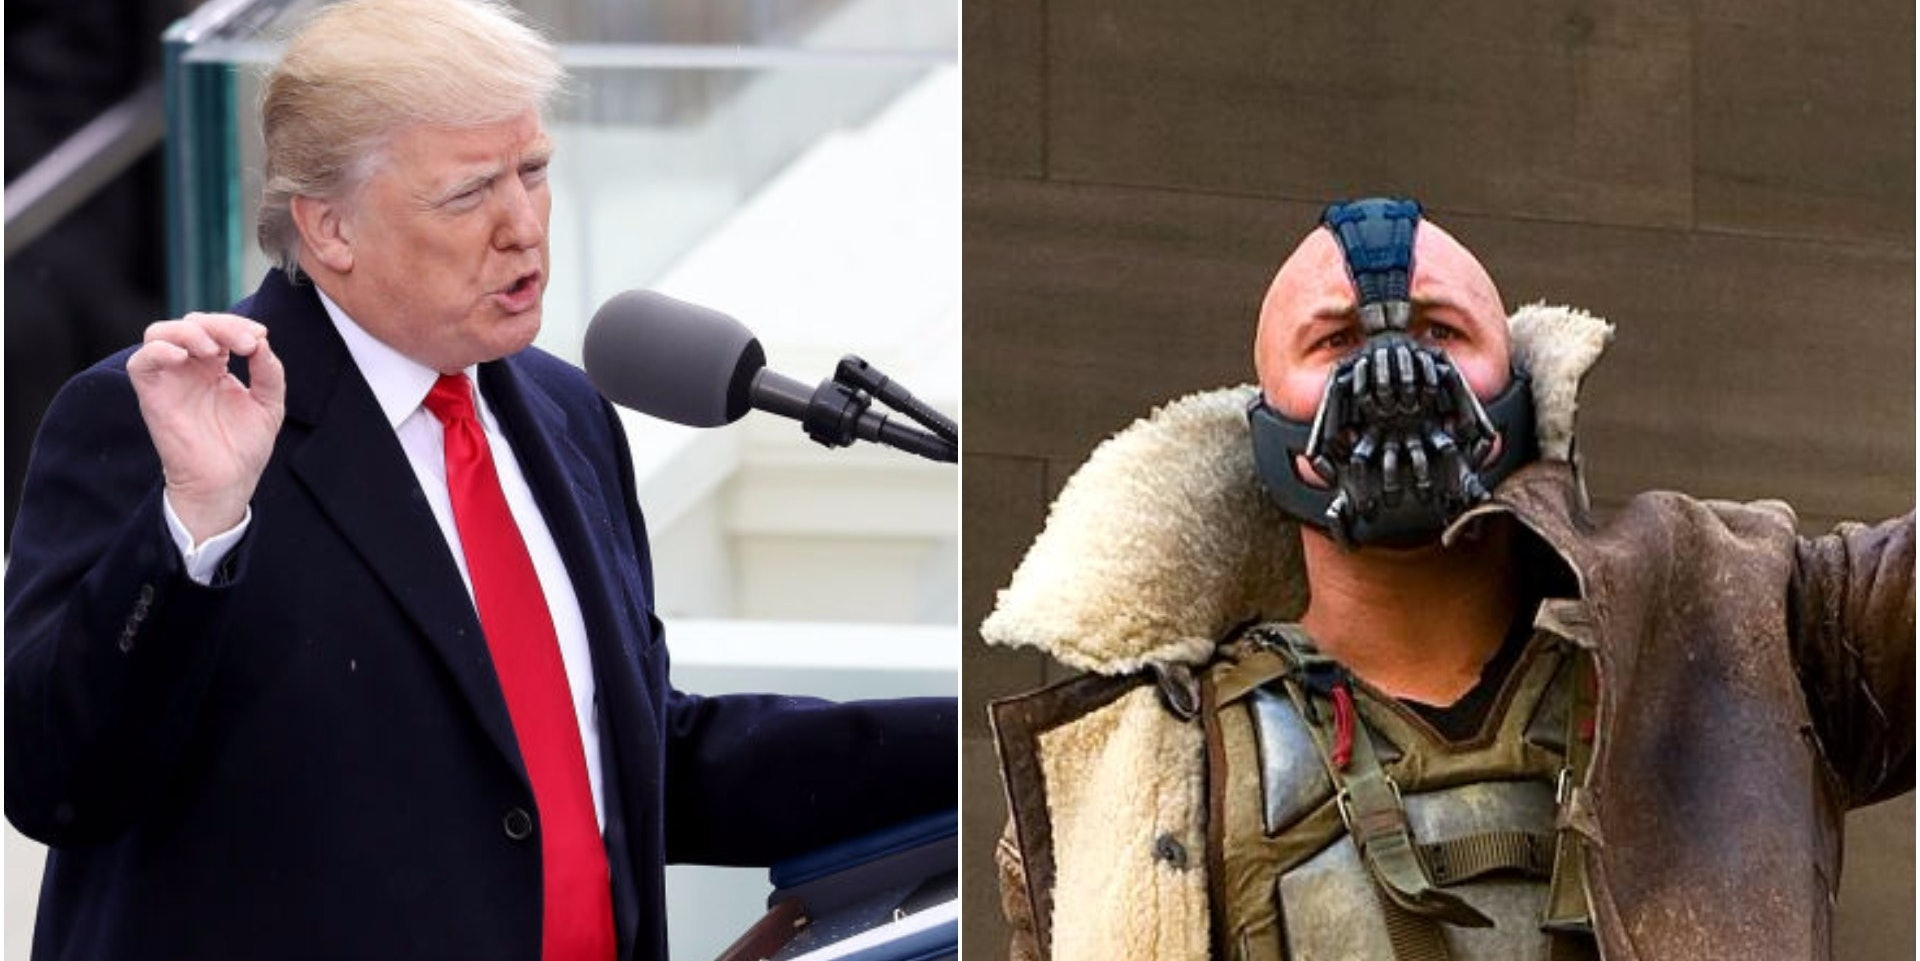 DC Comics Bane and Donald J. Trump the 45th President of the U.S.